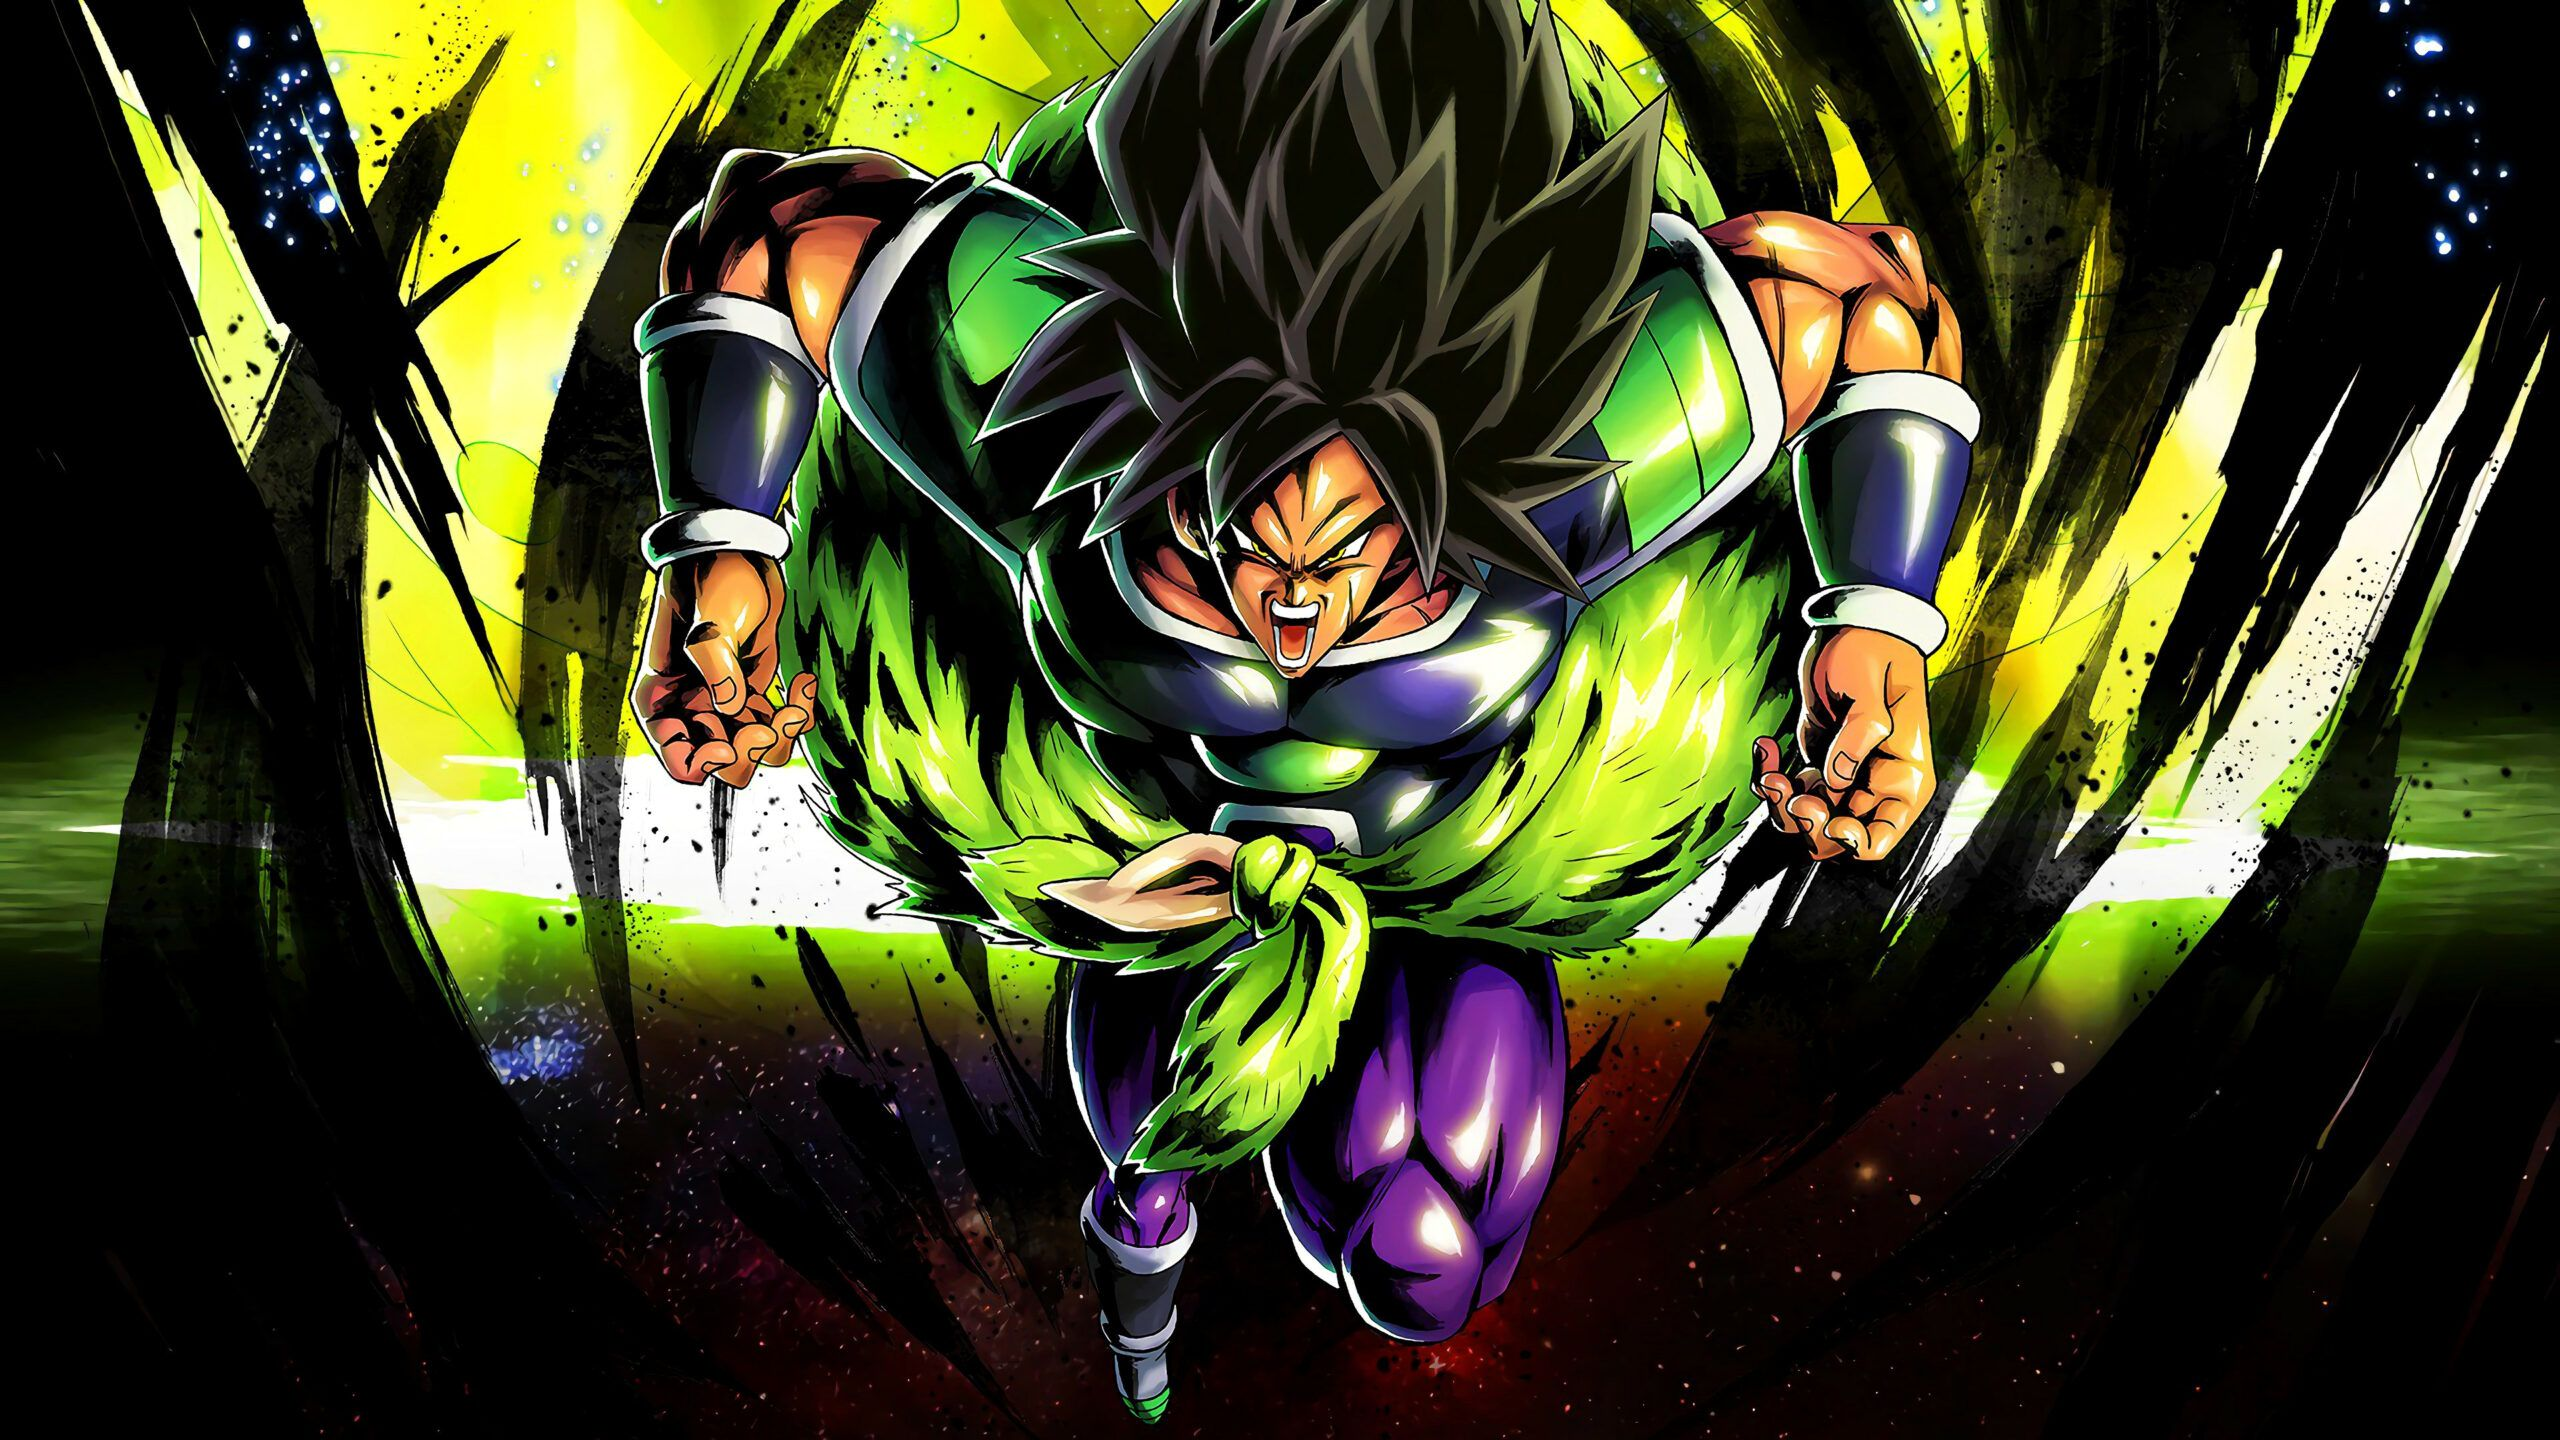 New Broly Dragon Ball Super Broly 4k 3840 215 2160 4 Wallpaper Dragon Ball Super Wallpapers Dragon Ball Wallpapers Dragon Ball Super Art